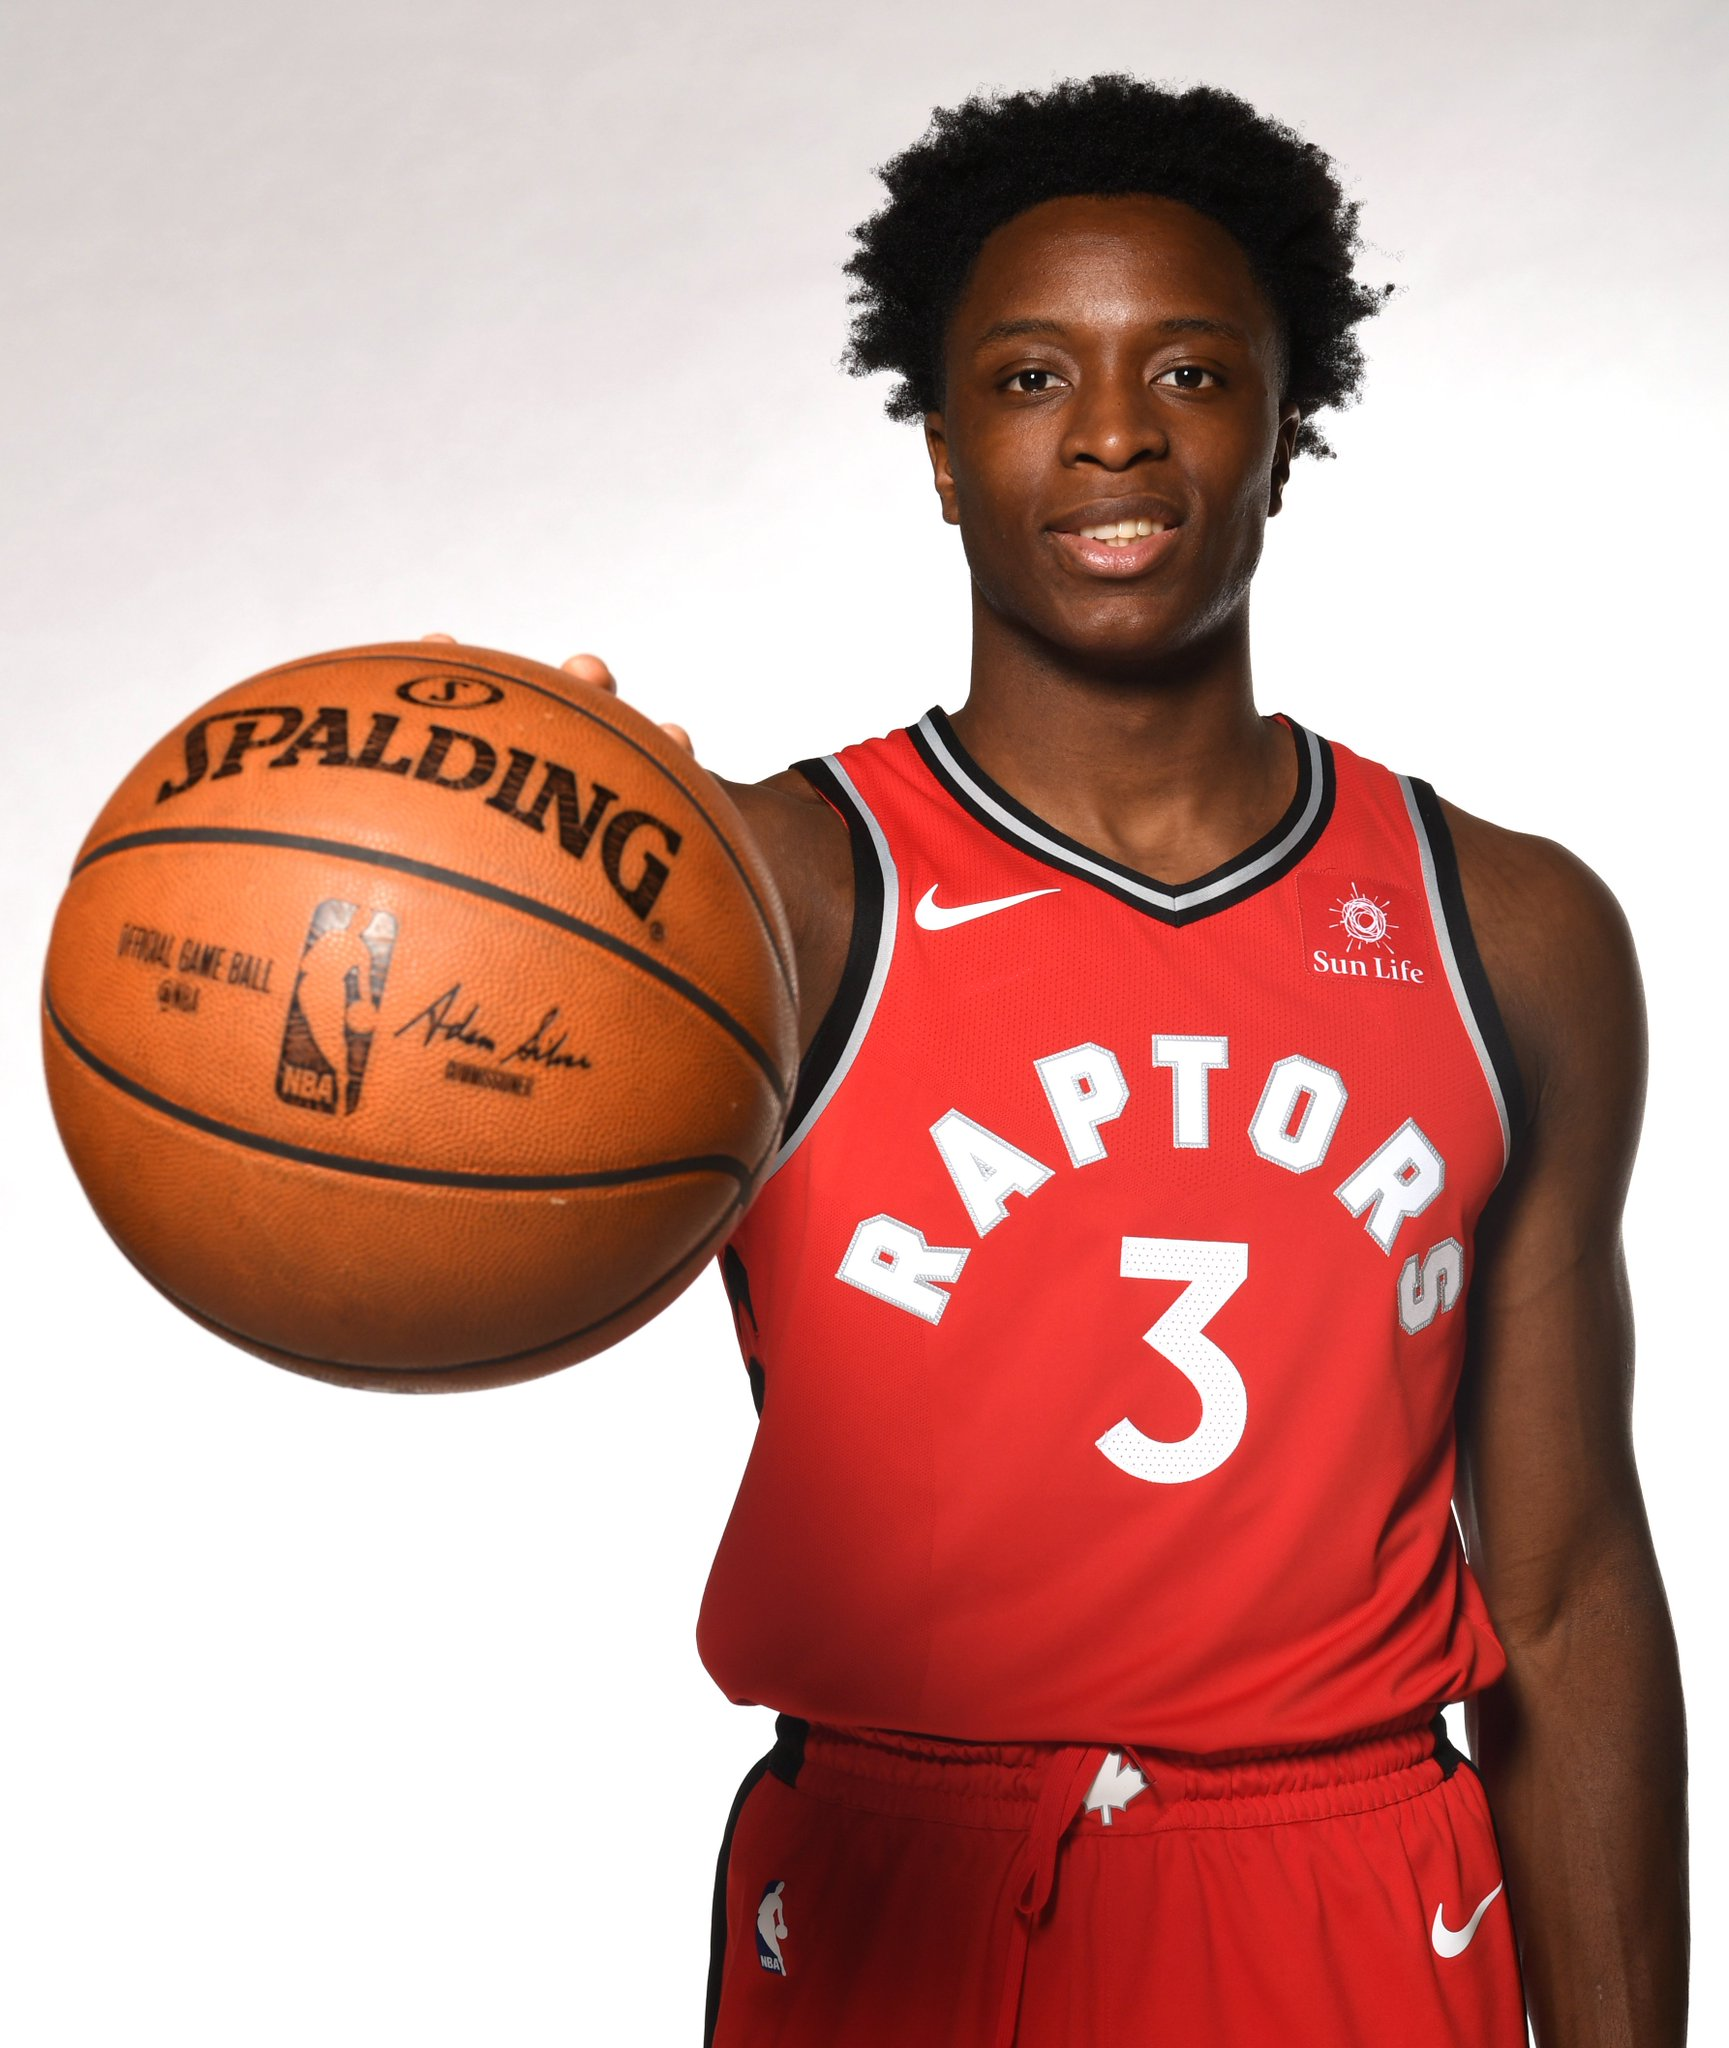 Join us in wishing @OAnunoby of the @Raptors a HAPPY 21st BIRTHDAY! #NBABDAY https://t.co/8ozDahI1h5